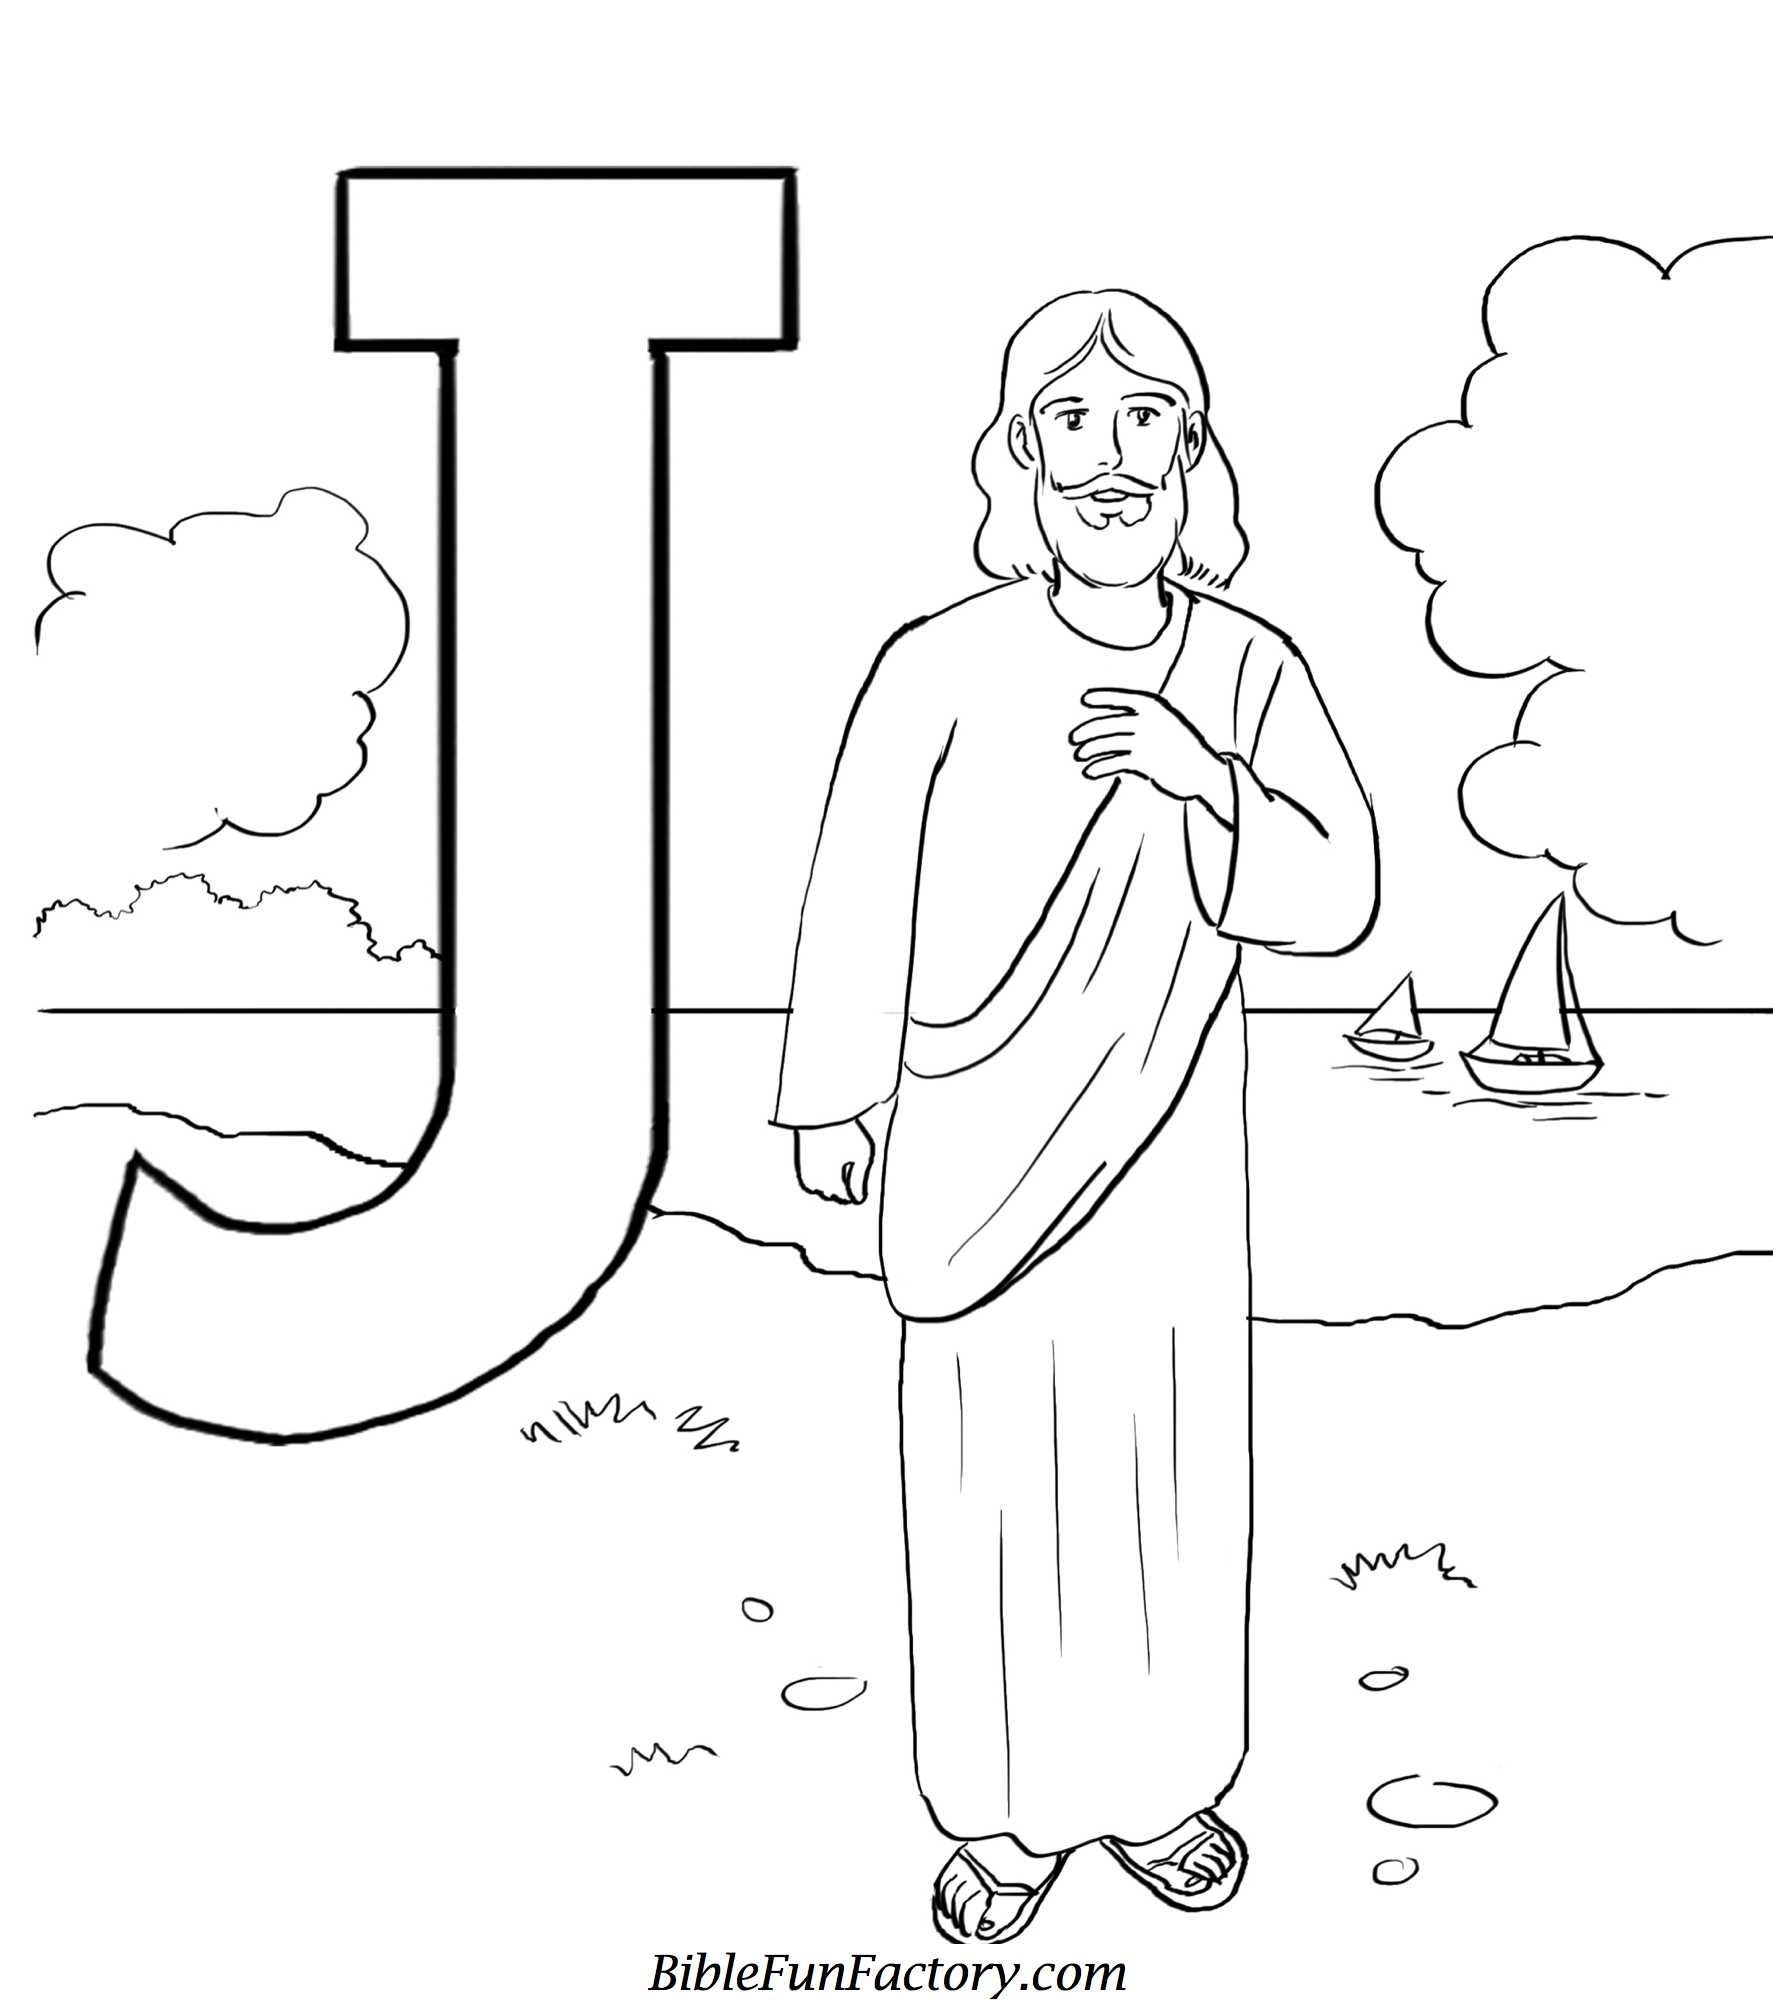 Get The Latest Free J For Jesus Coloring Page Images Favorite Pages To Print Online By ONLY COLORING